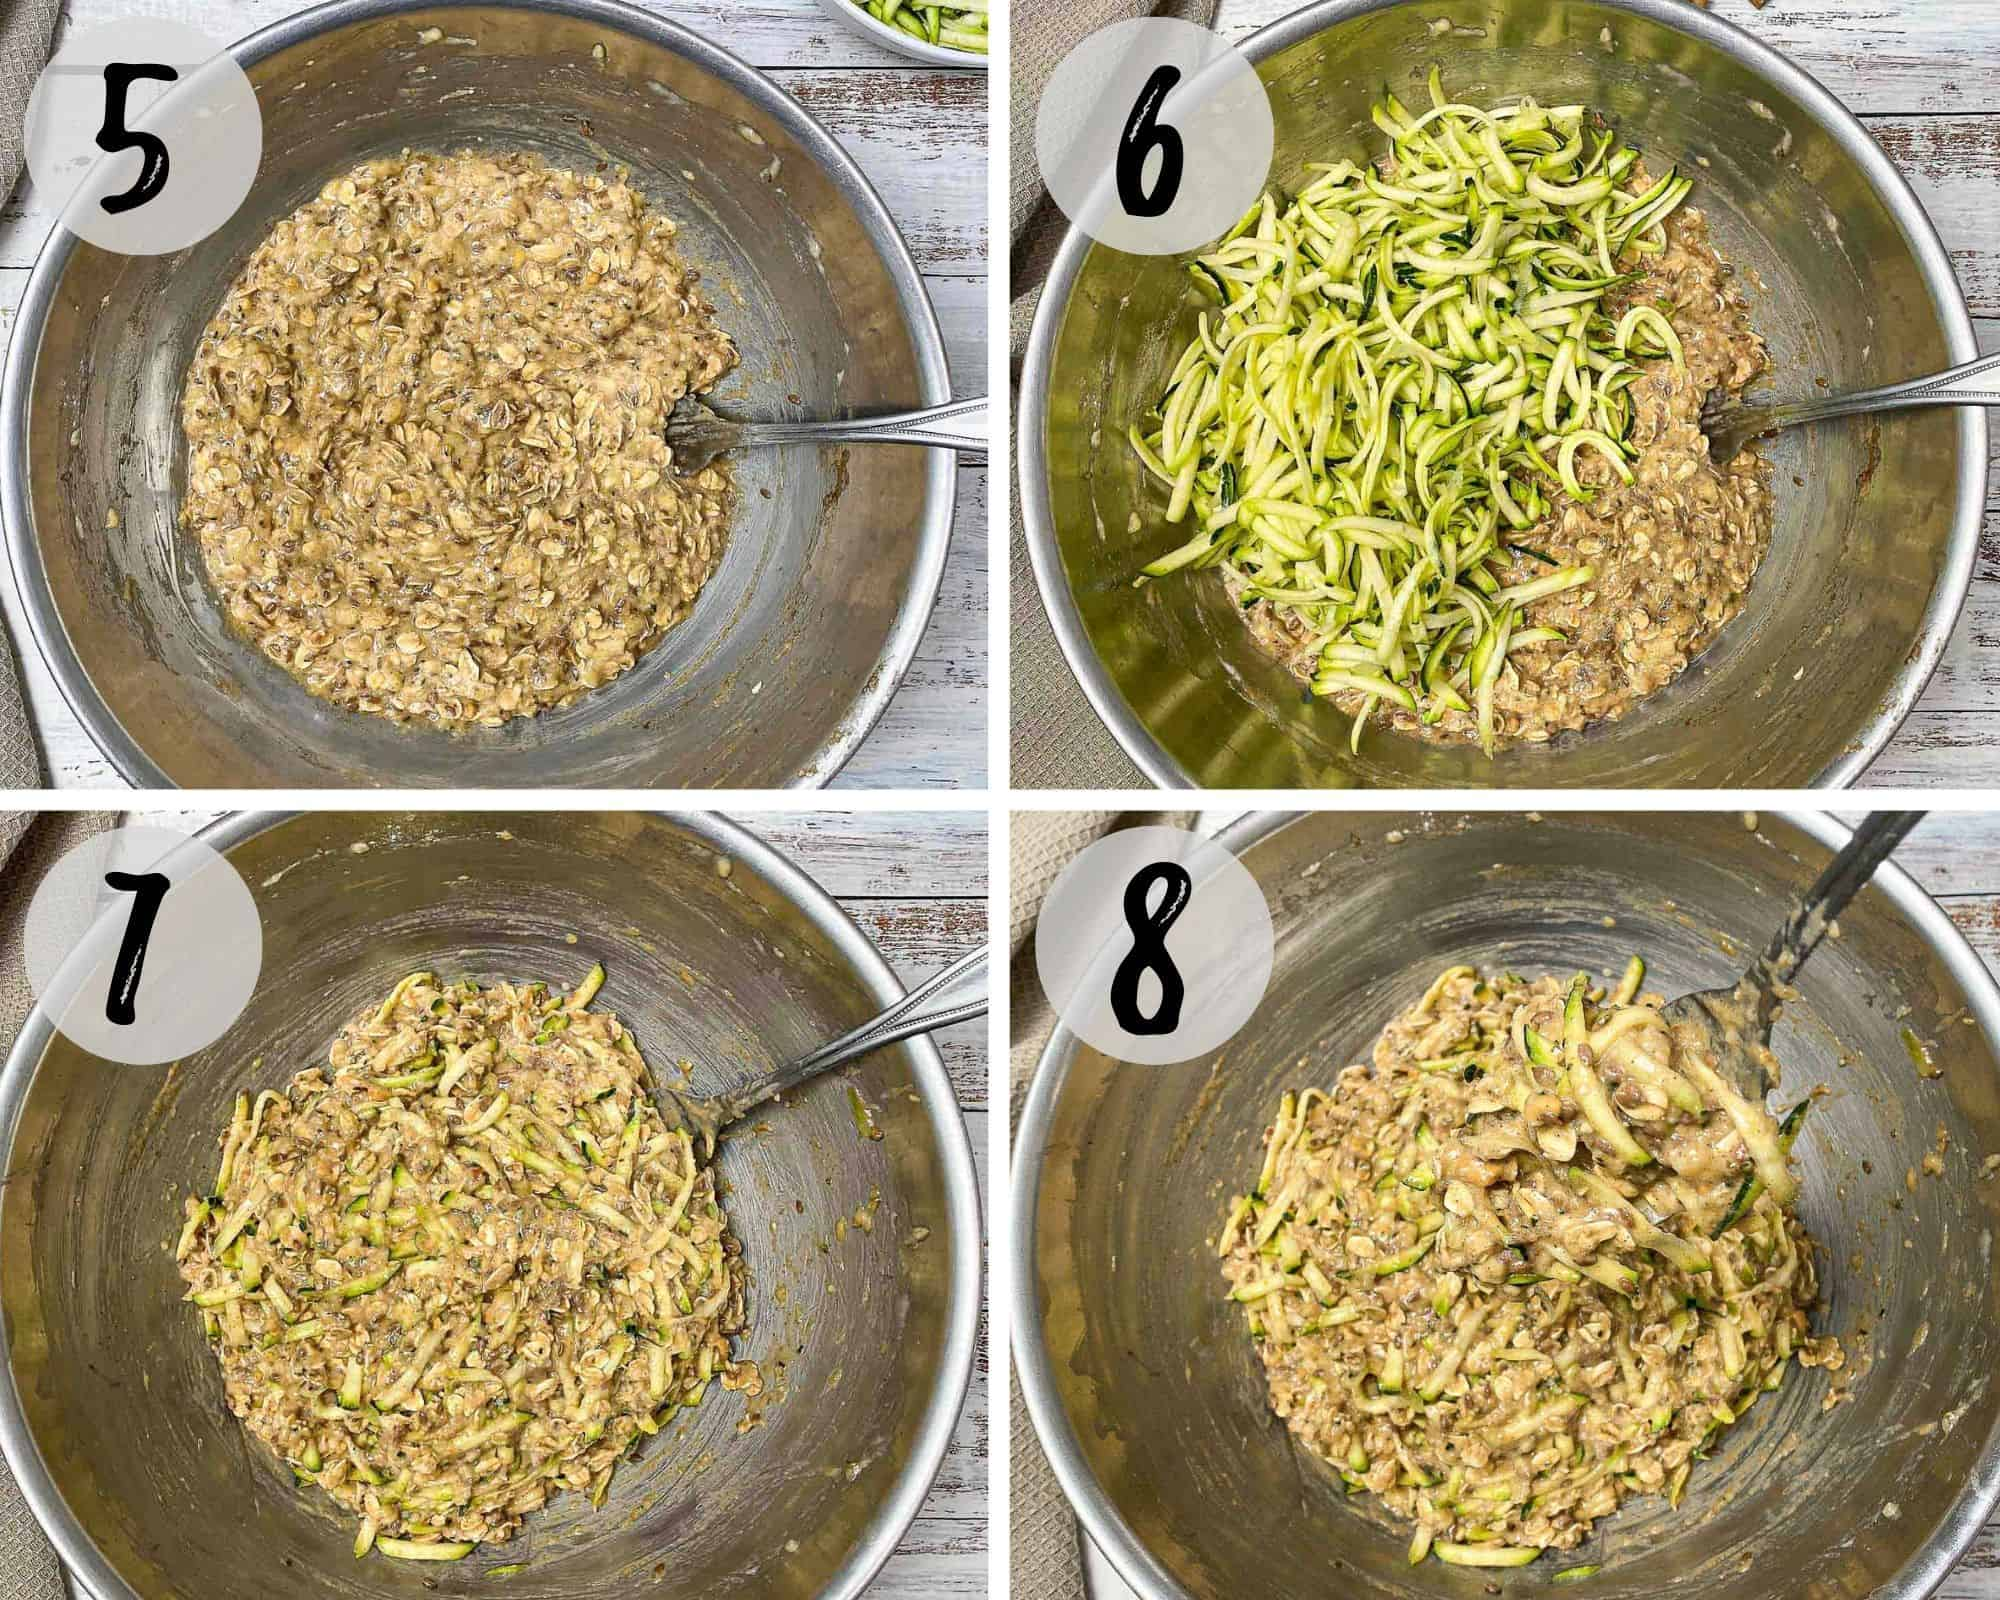 collage of 4 images of cookie dough batter with shredded zucchini being mixed in